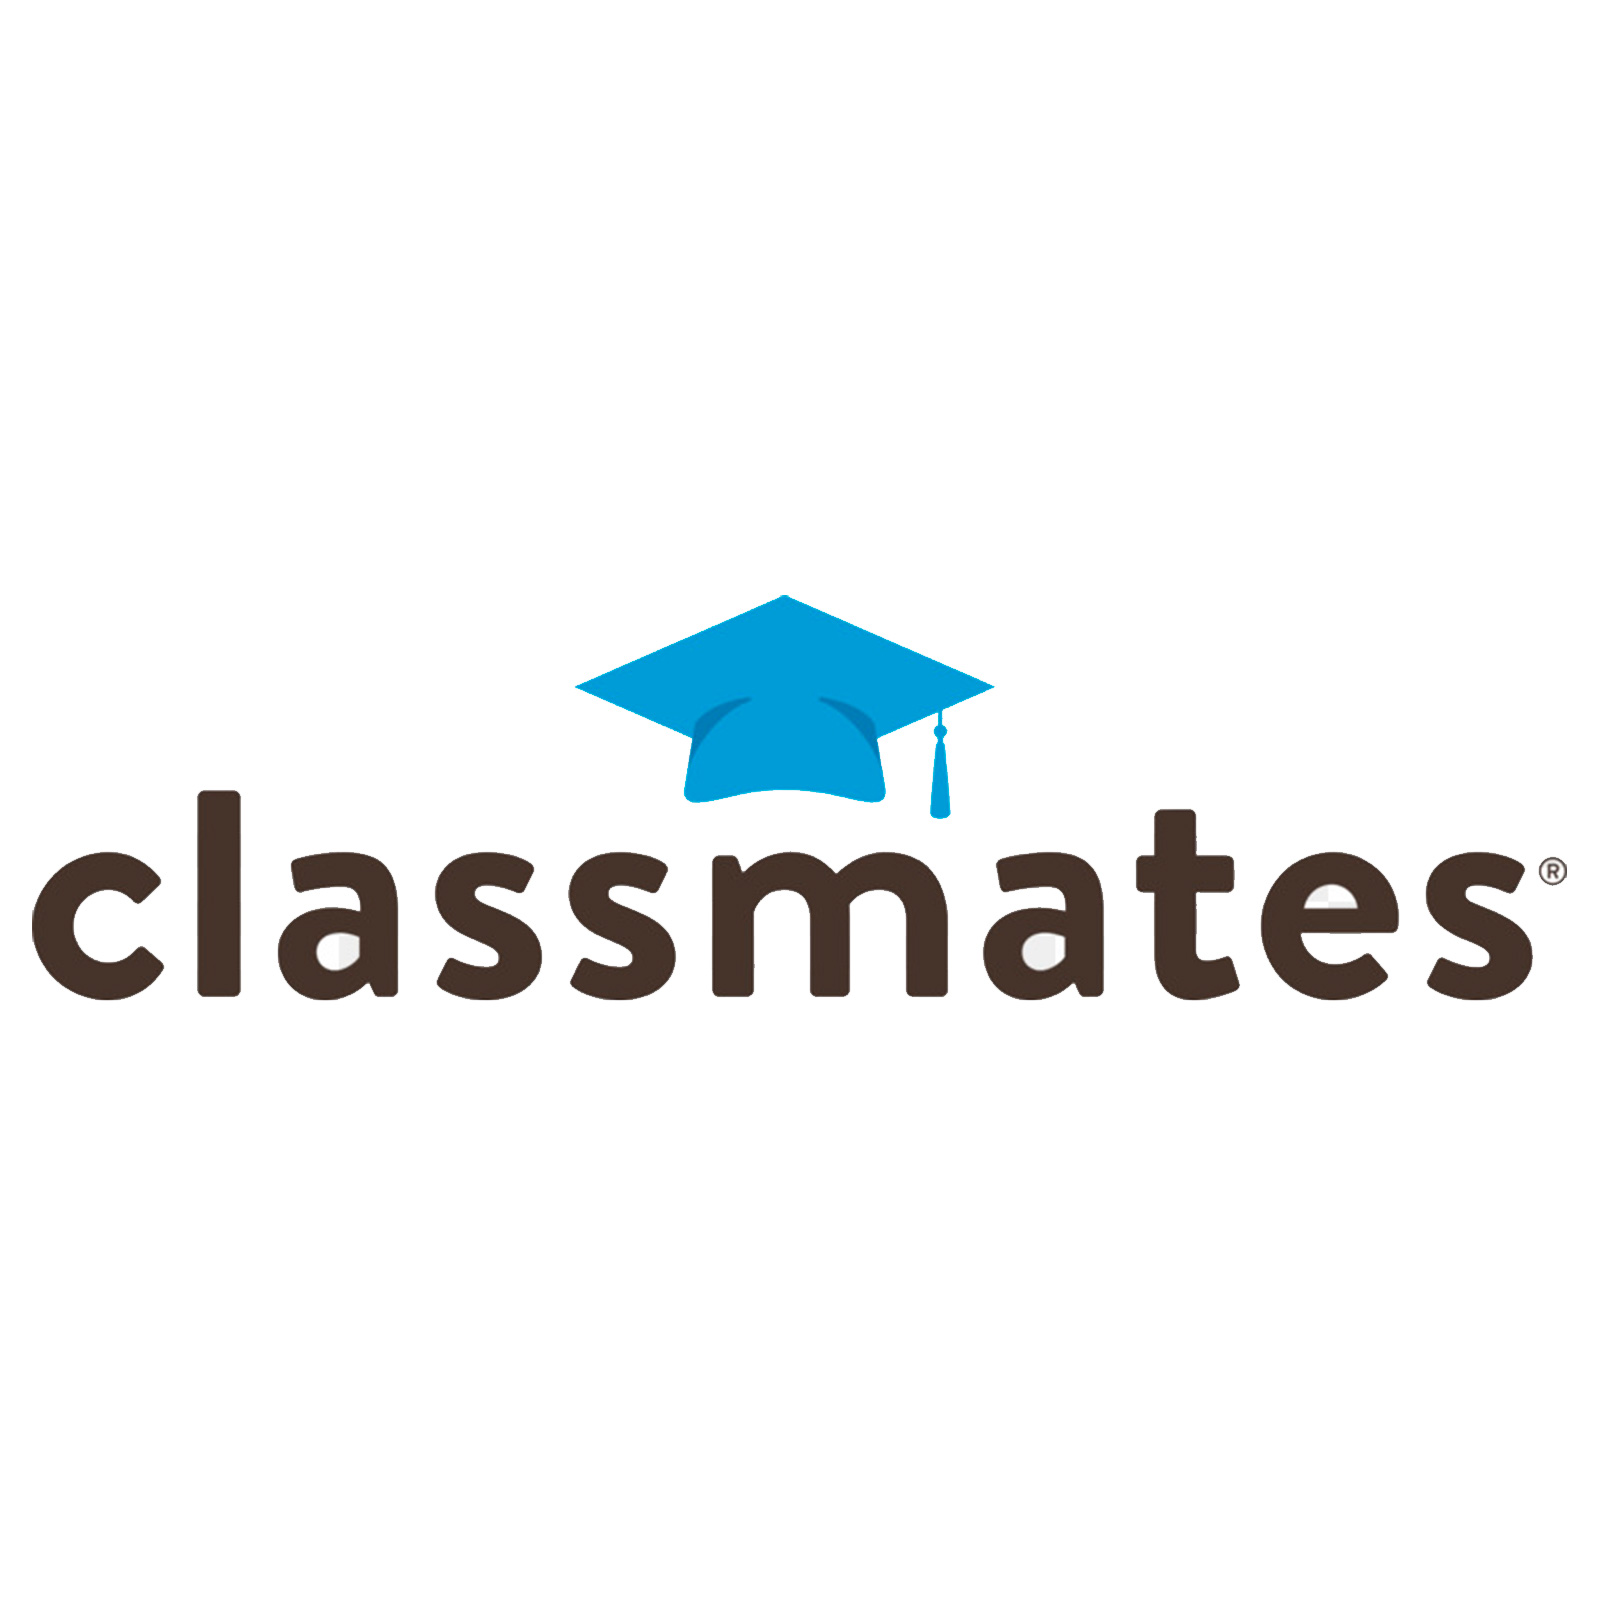 Classmates allows users to find, connect and keep in touch with friends and acquaintances from school and college. It is also possible for users to upload their yearbook from their school years.